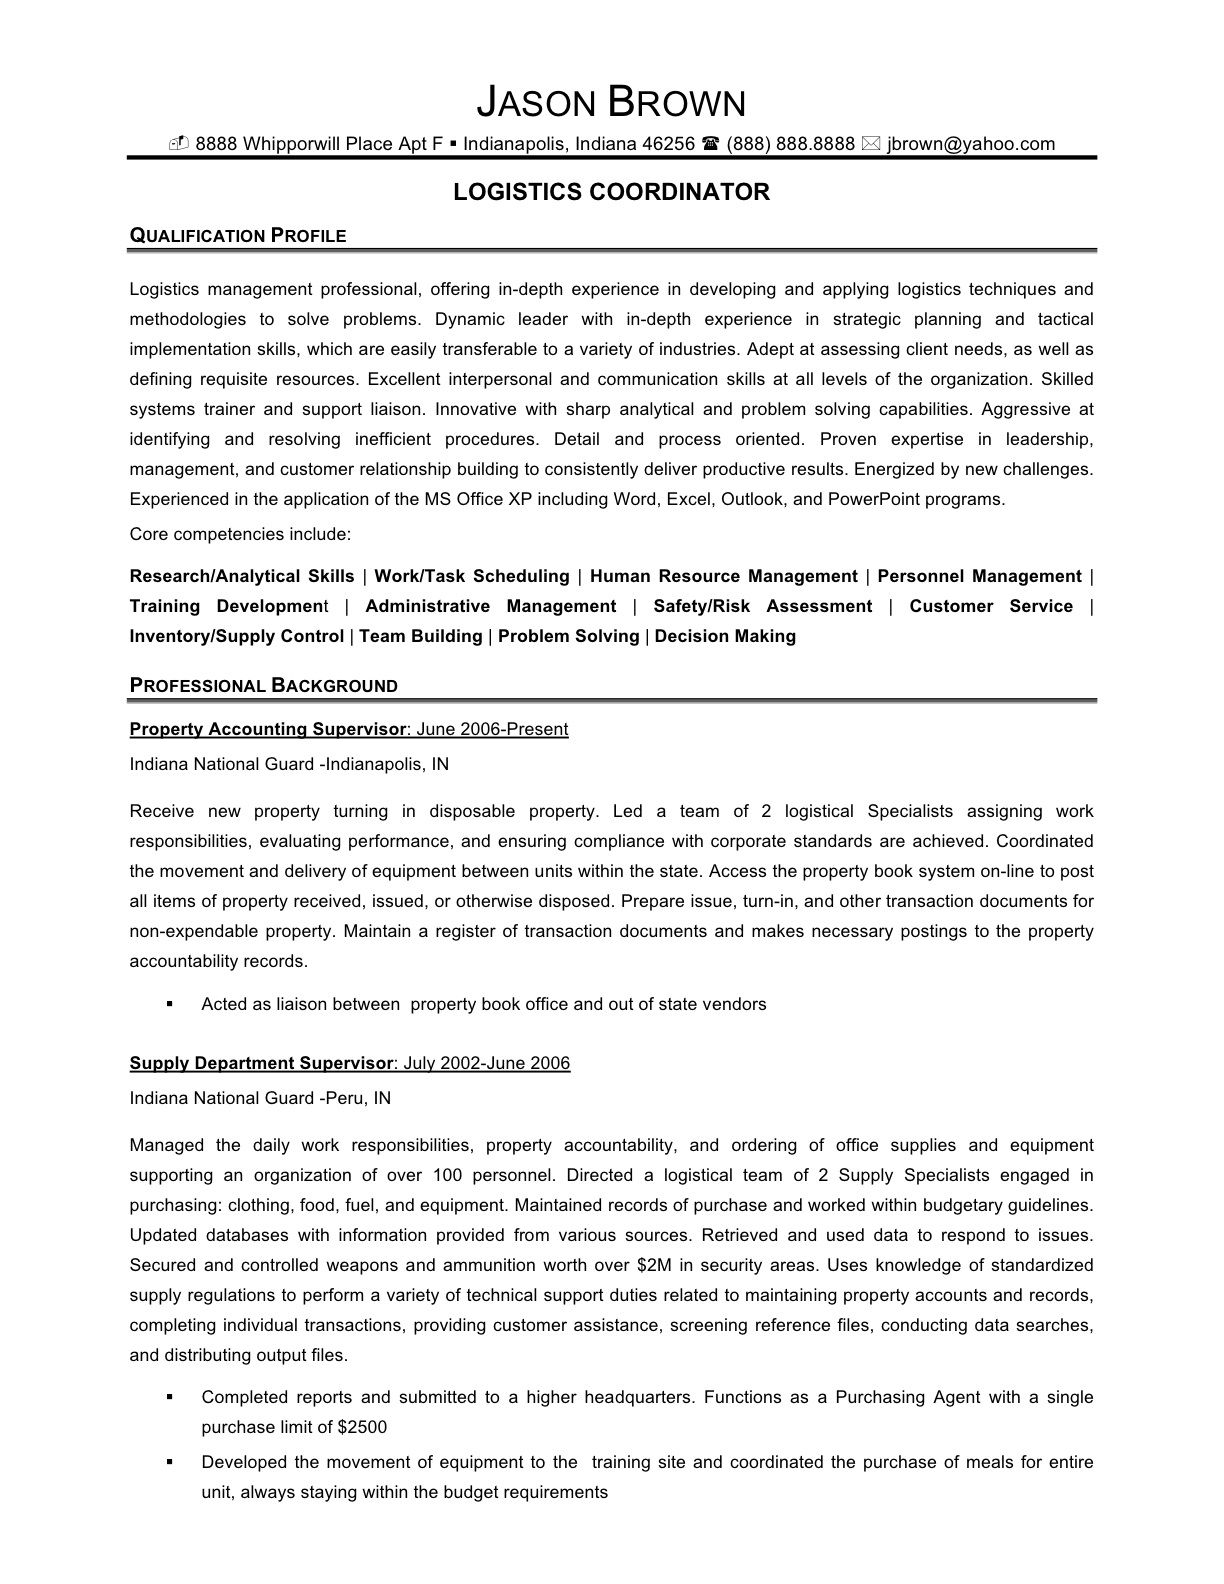 explore simple resume examples sample resume and more - Sample Resume Director Of Logistics